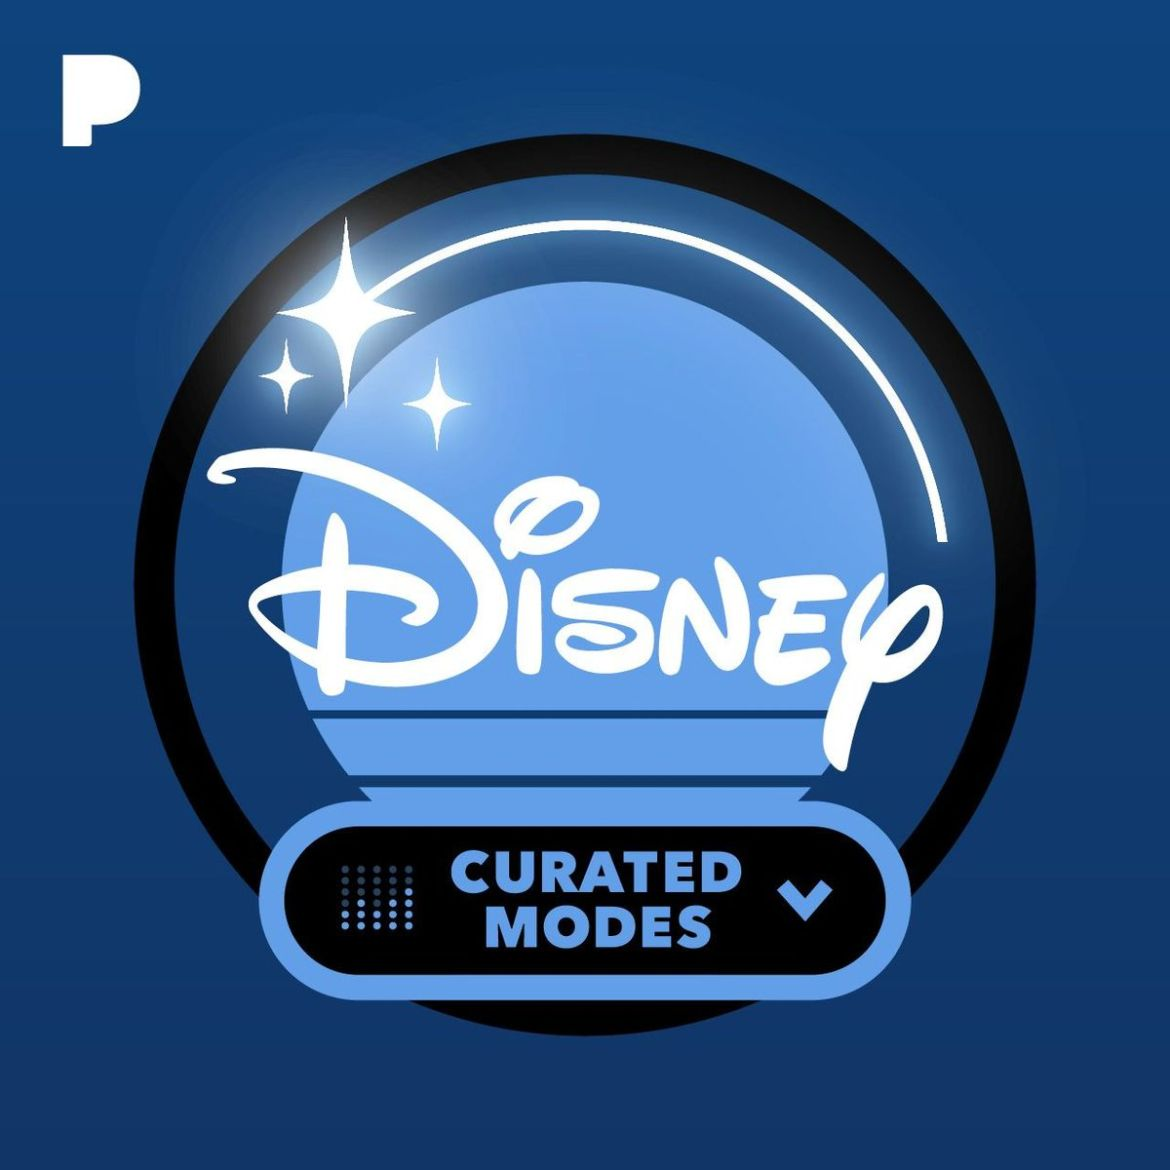 Pandora music launches new Disney music station!